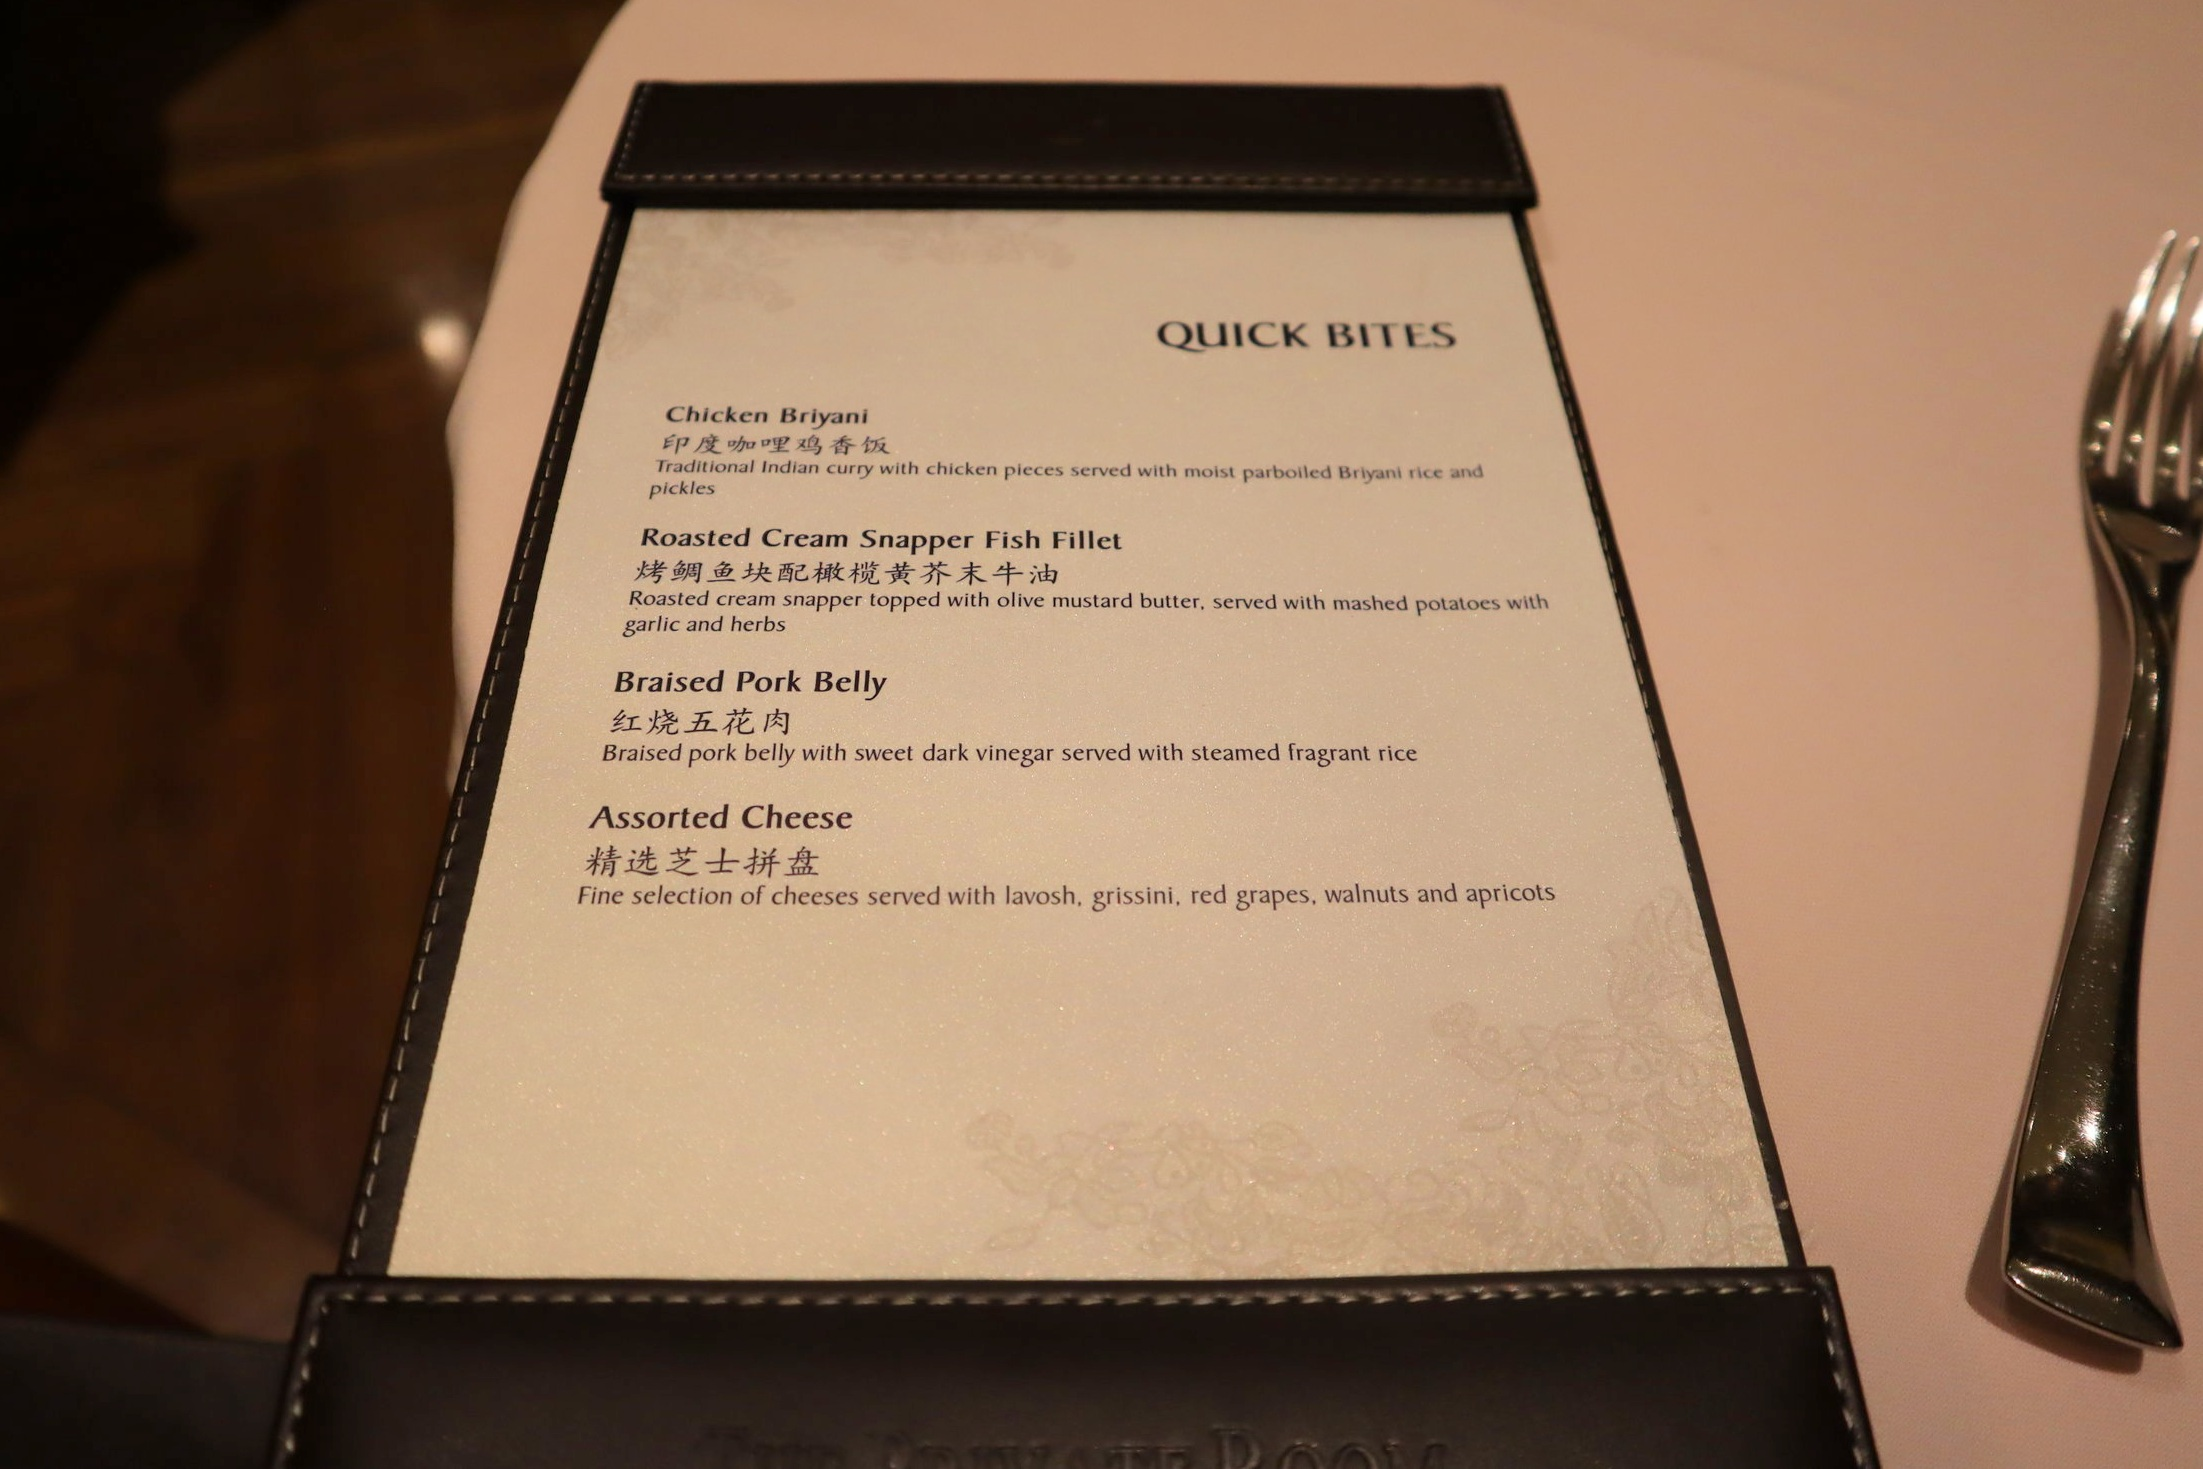 The Private Room by Singapore Airlines – Quick Bites menu